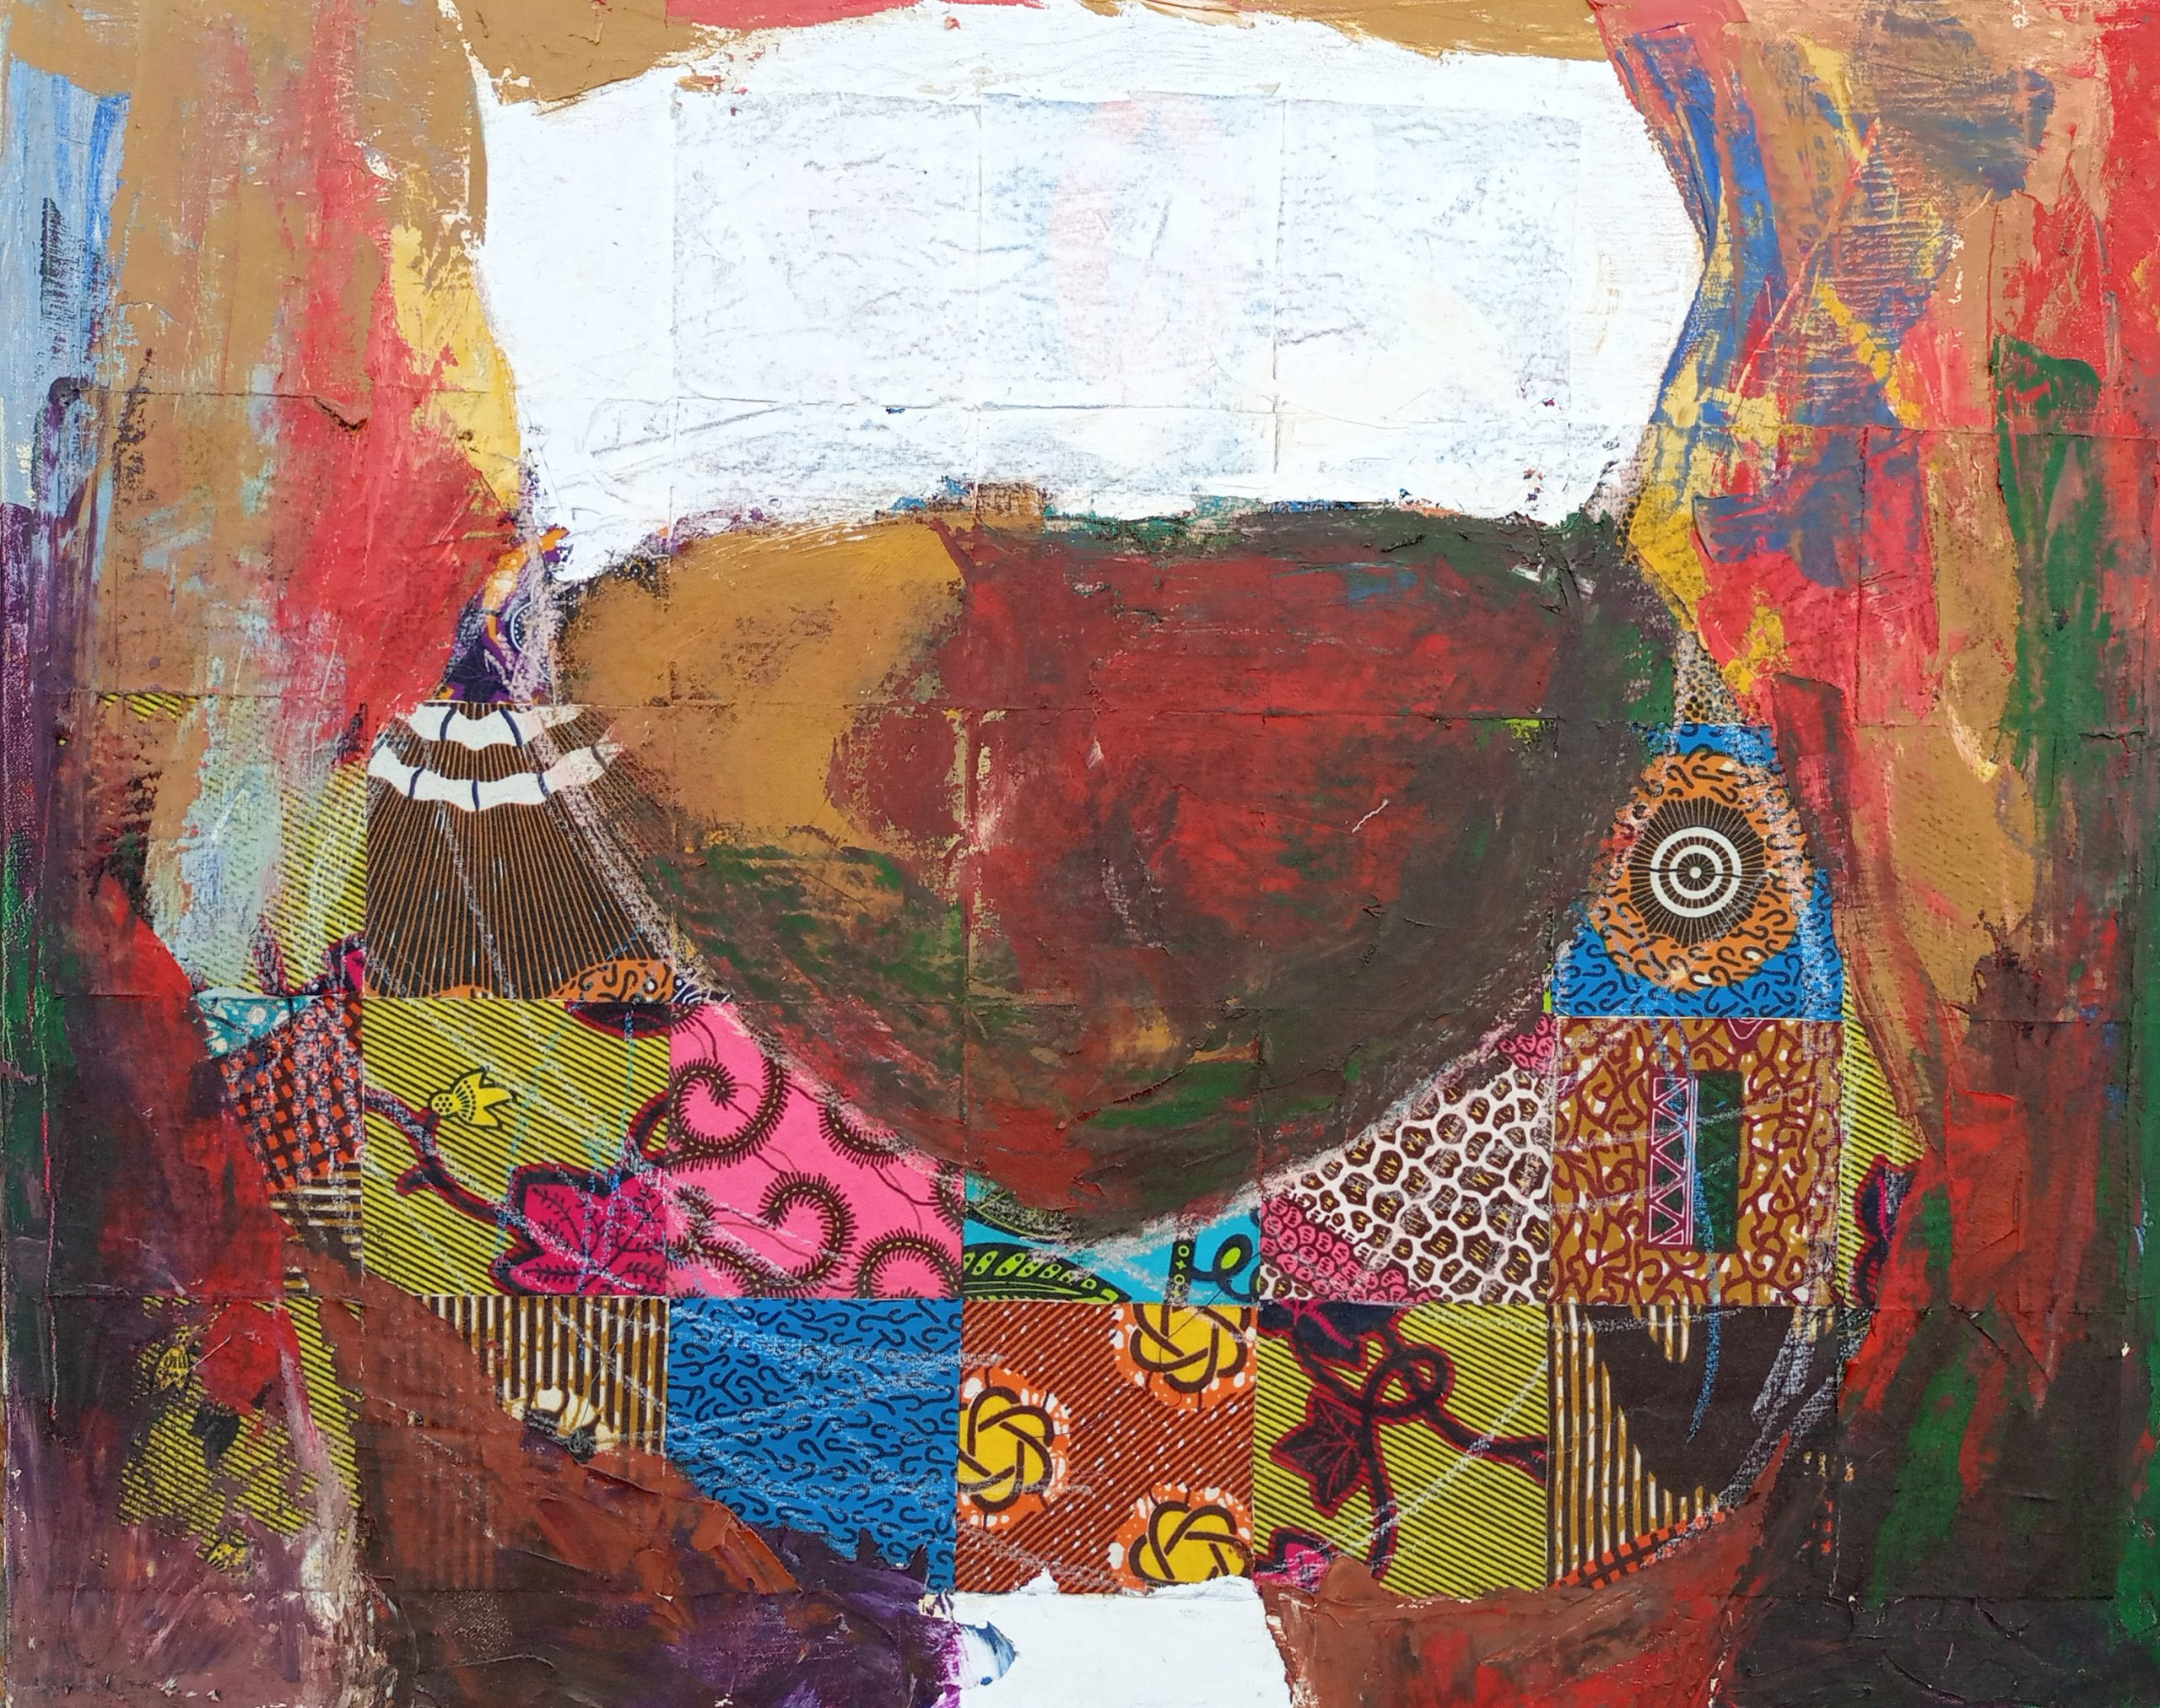 Dipo Girl, April 2021, 30inches x 24inches